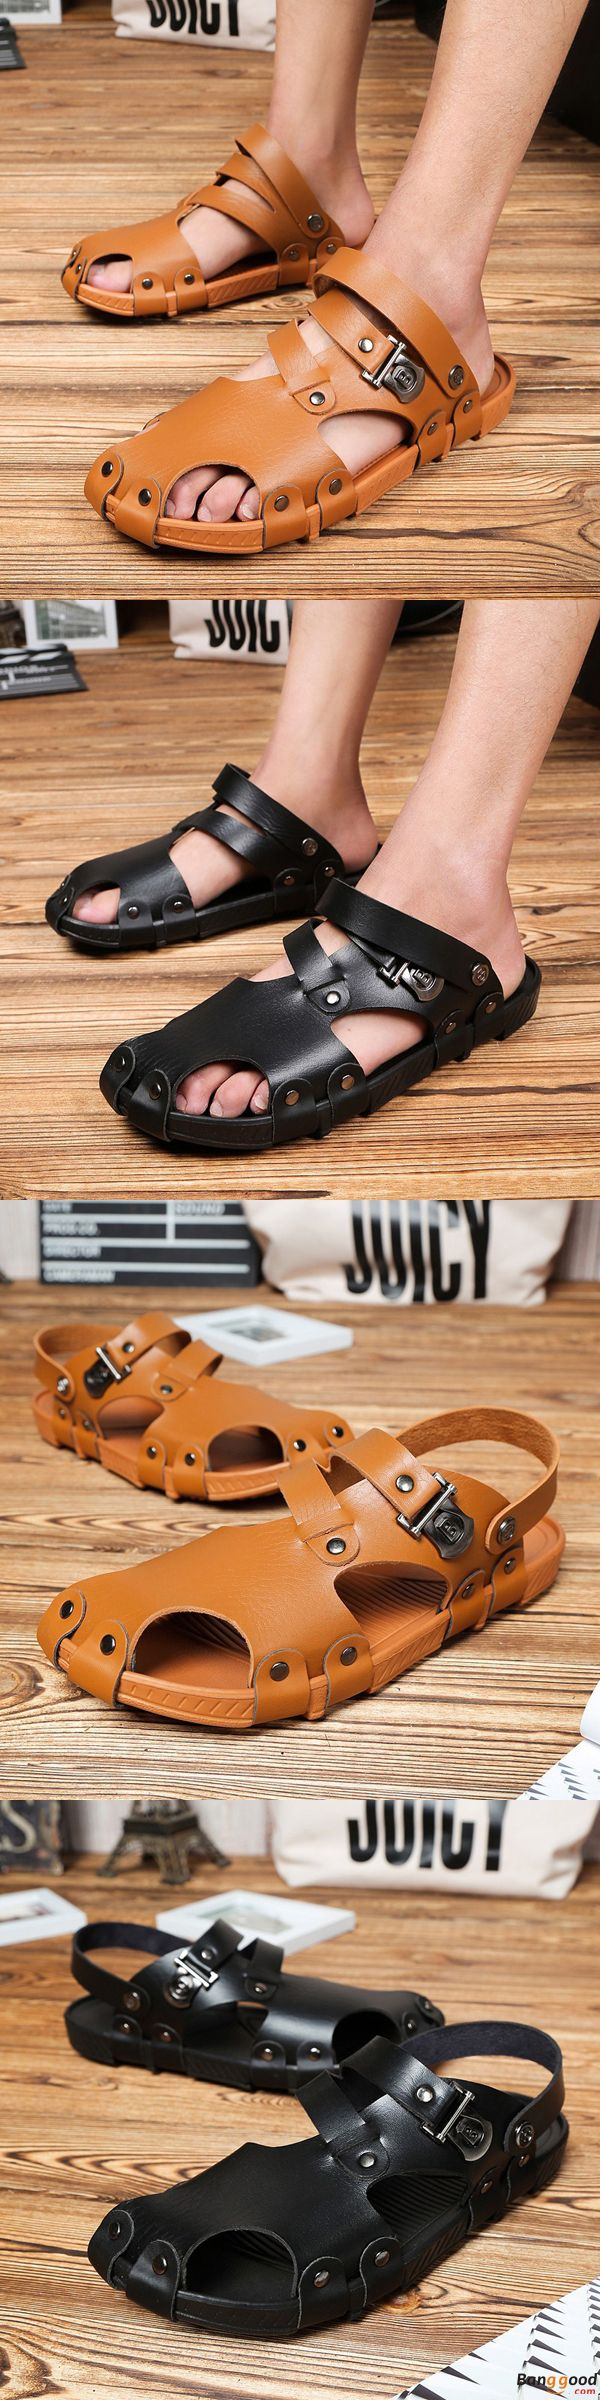 US$23.99 + Free shipping. Men Sandals, Summer Sandals, Casual Sandals, Hole Slippers, Beach Shoes, Beach Slippers. Color: Black, Brown. Upper Material: Cow Split Leather. In & Cool.